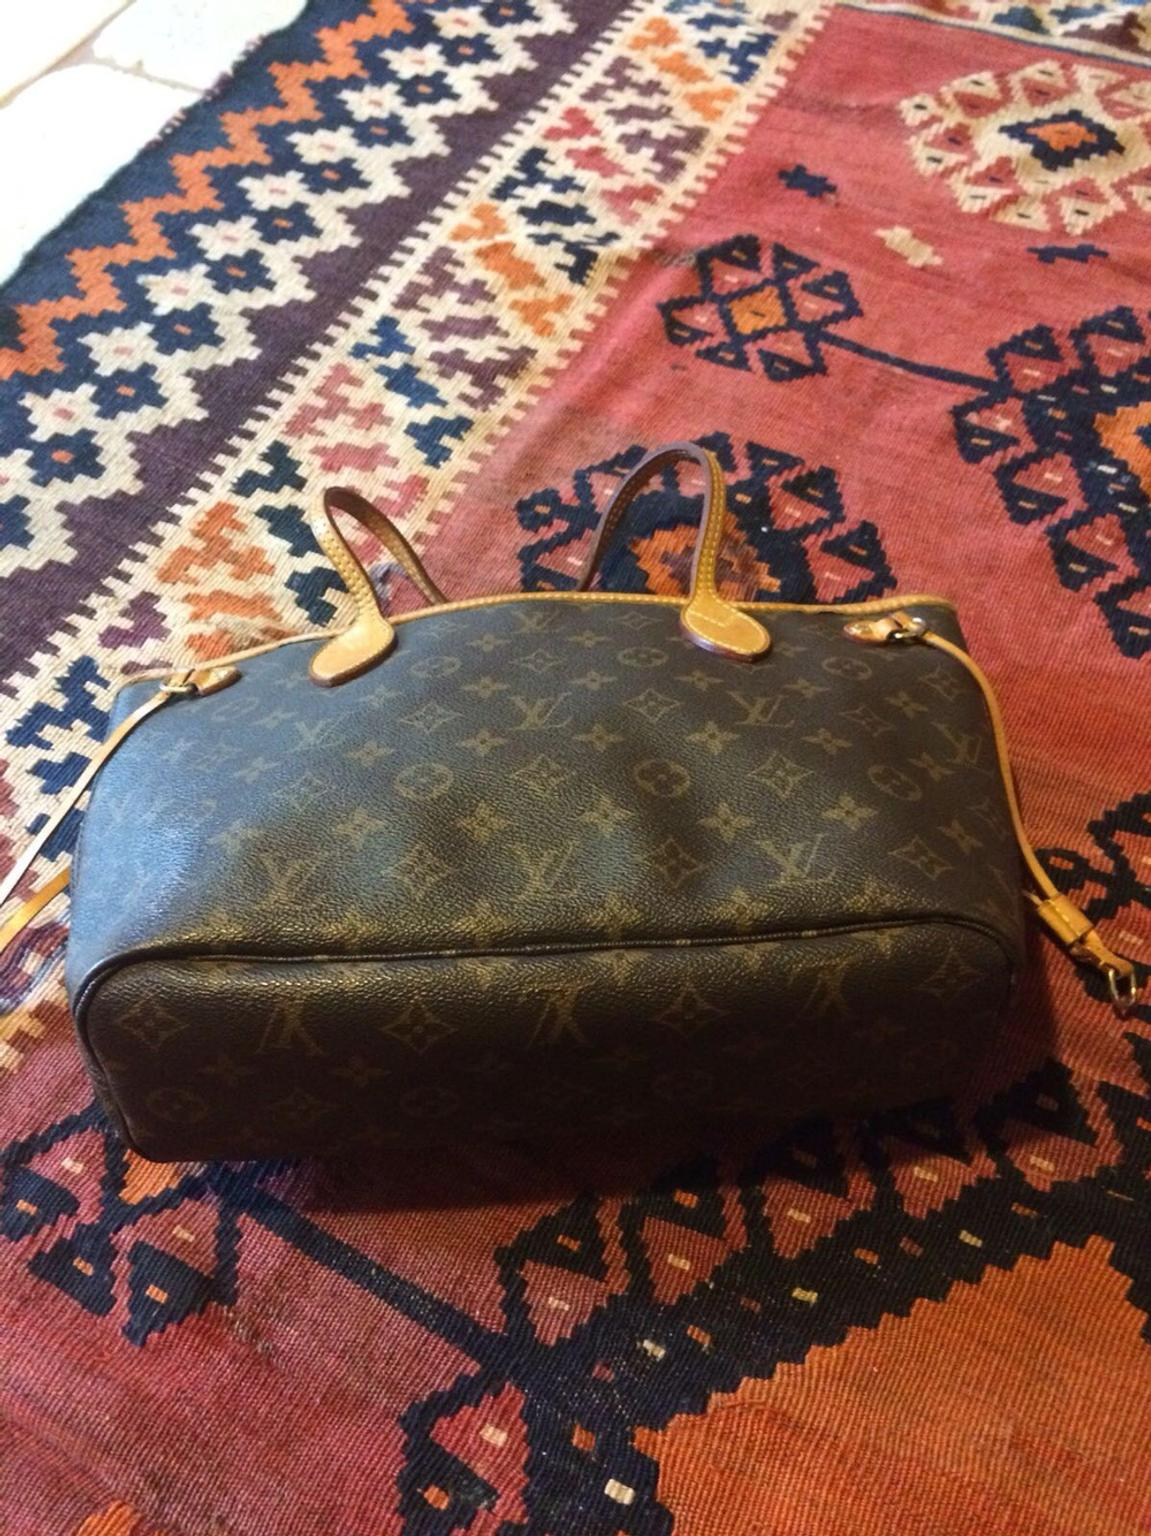 13b654b3f0 Borsa Louis Vuitton Neverfull pm in 87067 Rossano Stazione for €380.00 for  sale - Shpock